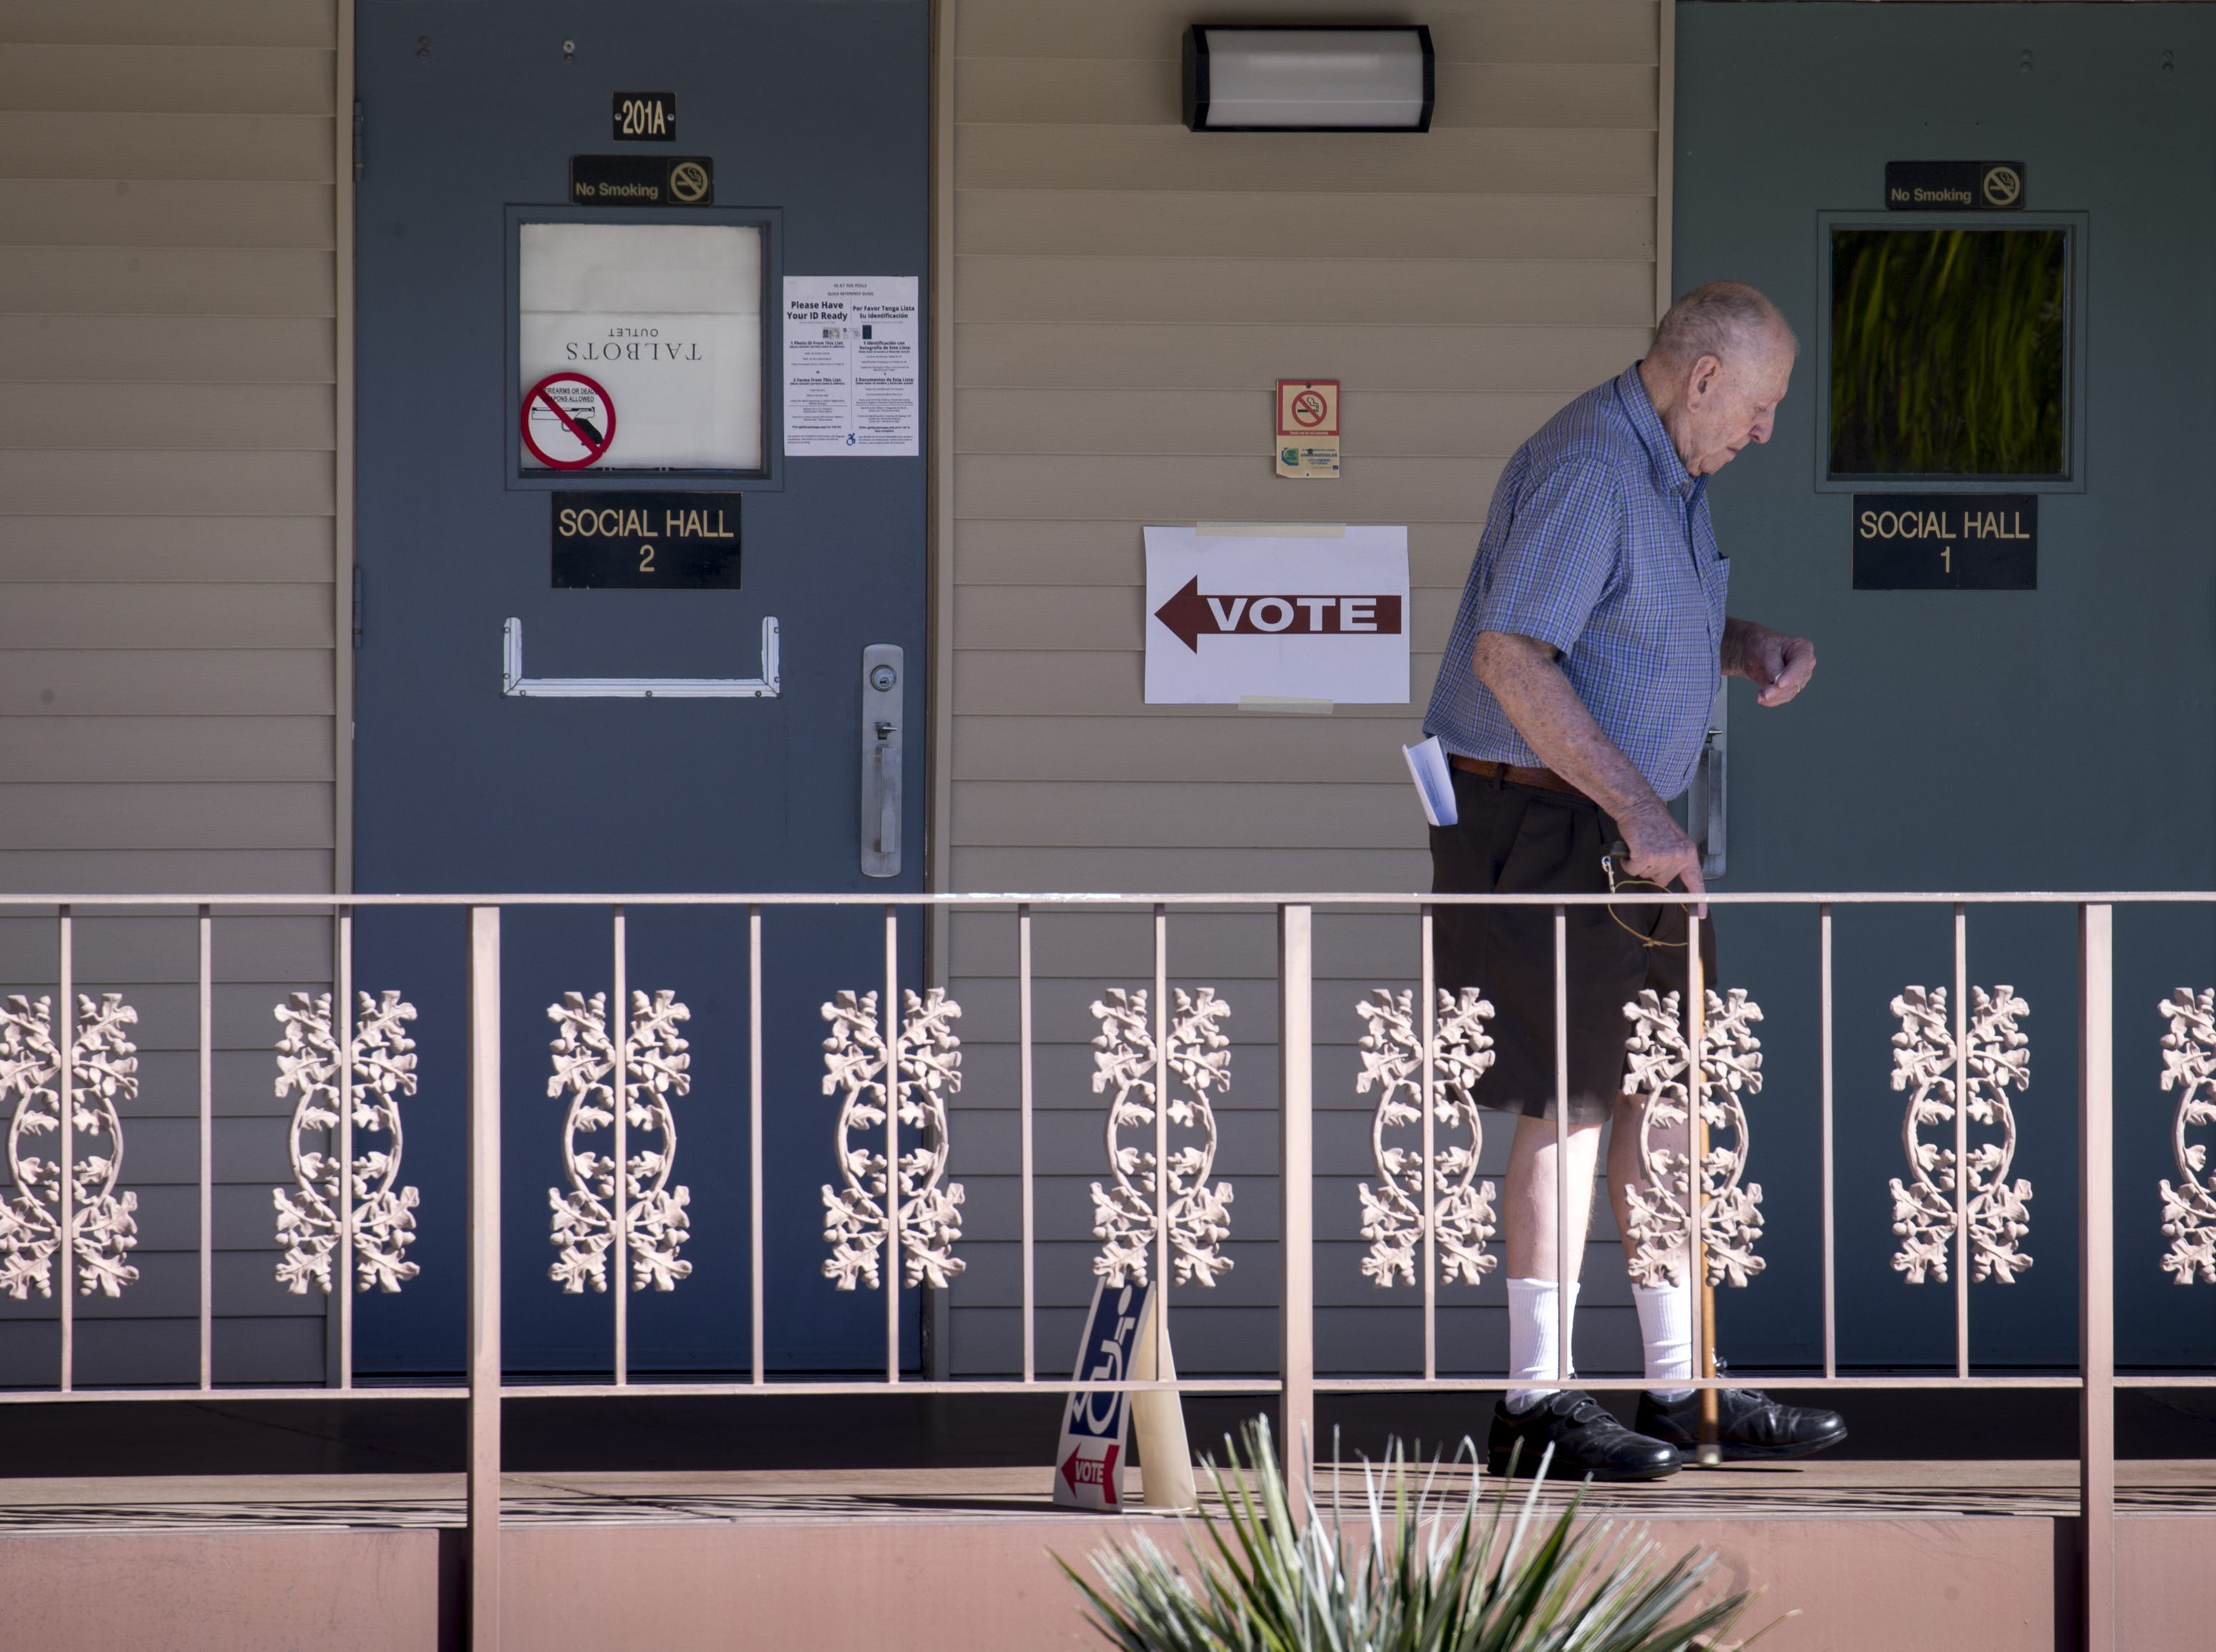 Jim Carper leaves the polling place after casting his ballot, Nov. 6, 2018, at Lakeview Rec Center, 10626 W. Thunderbird Blvd. in Sun City.